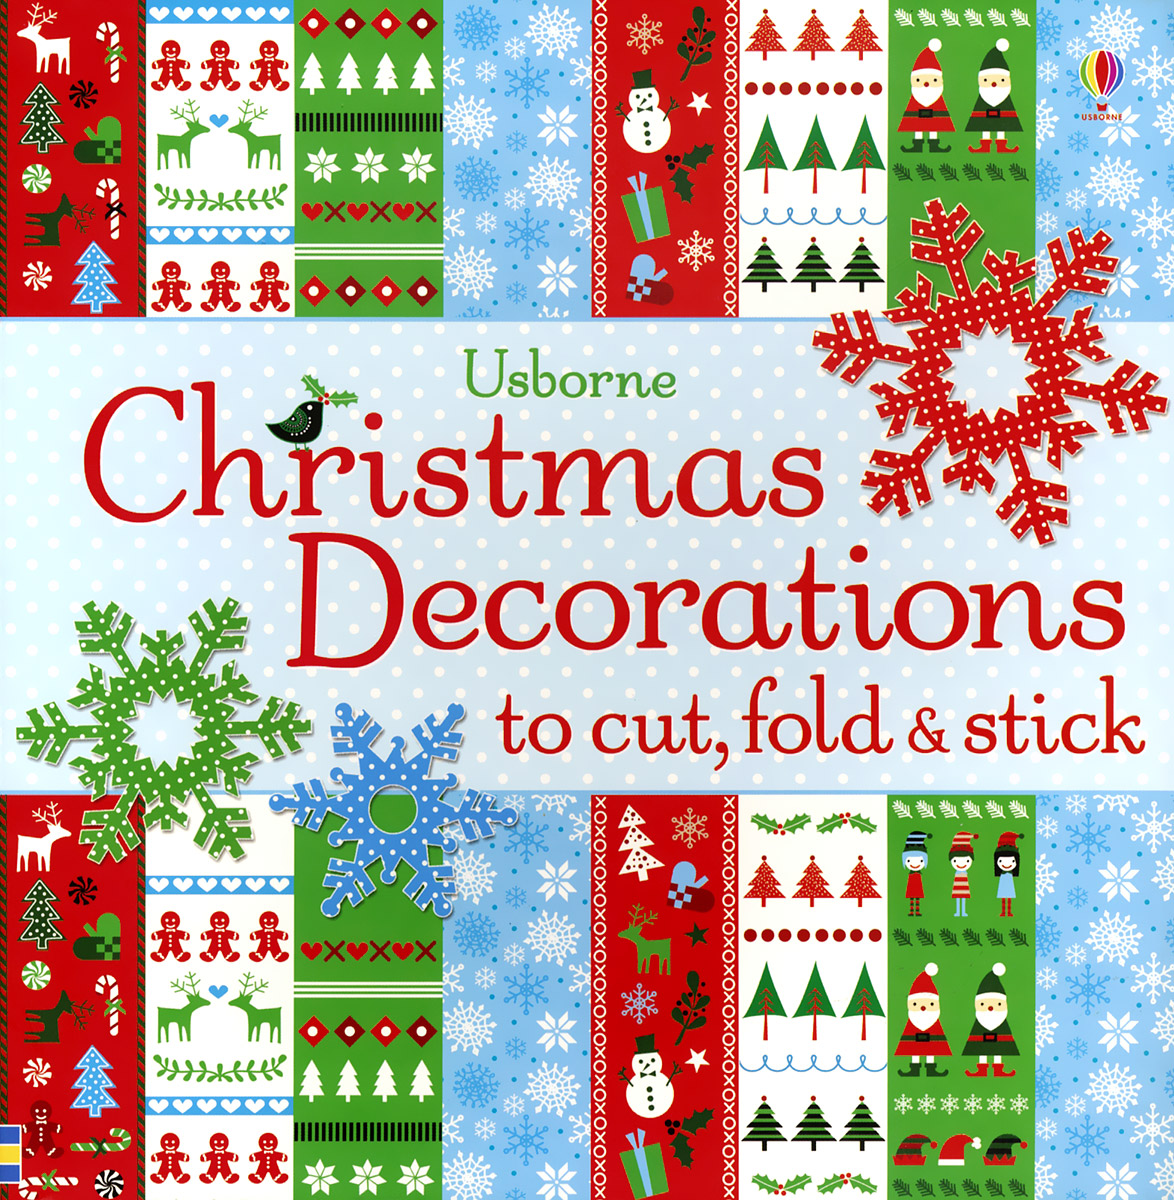 Christmas Decorations to Cut: Fold and Stick